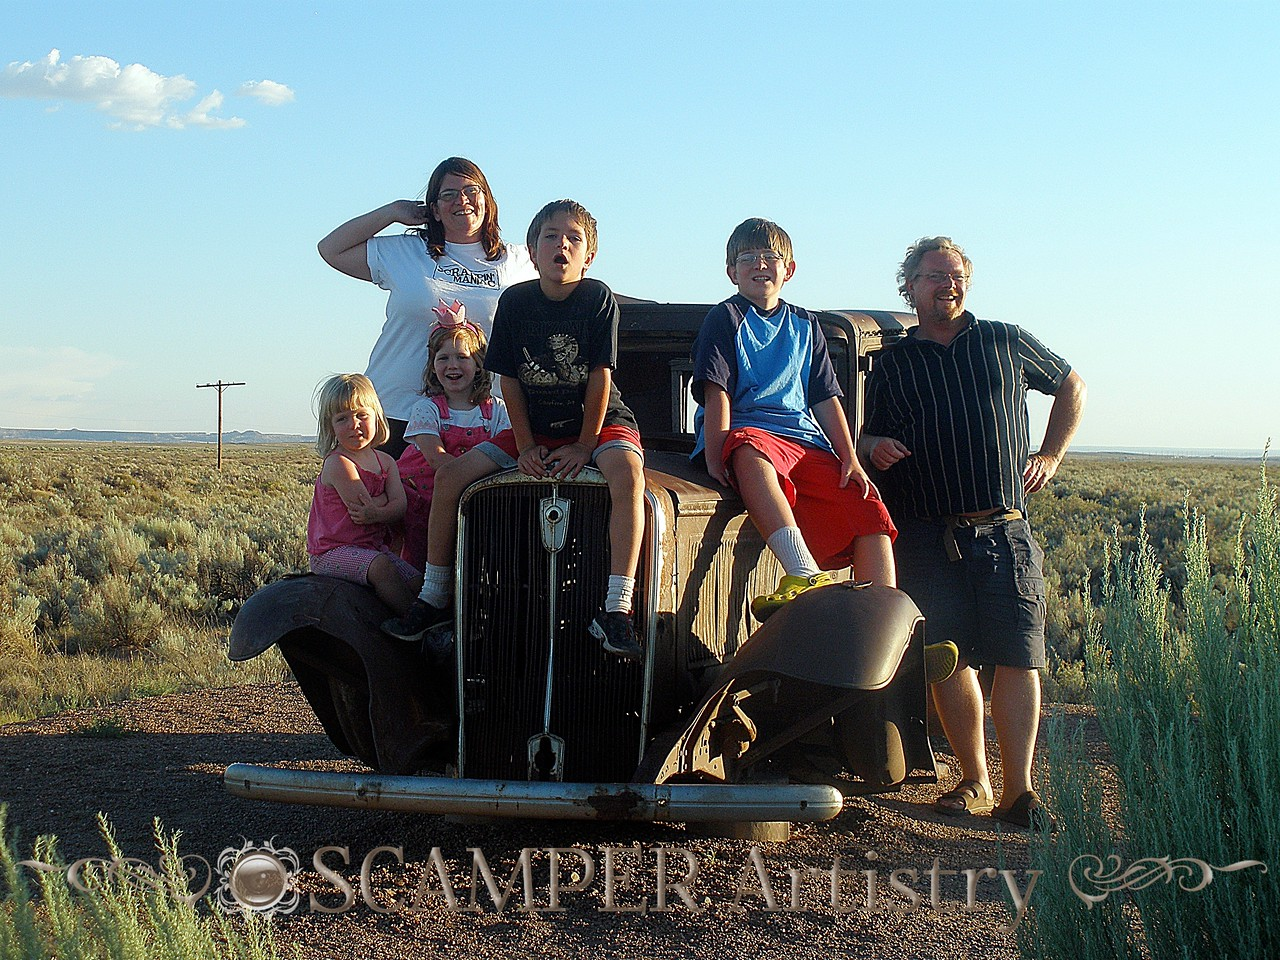 Ellison Family Road Trip '09 - at Petrified National Park, Arizona (this is my fave self-family-portrait) —